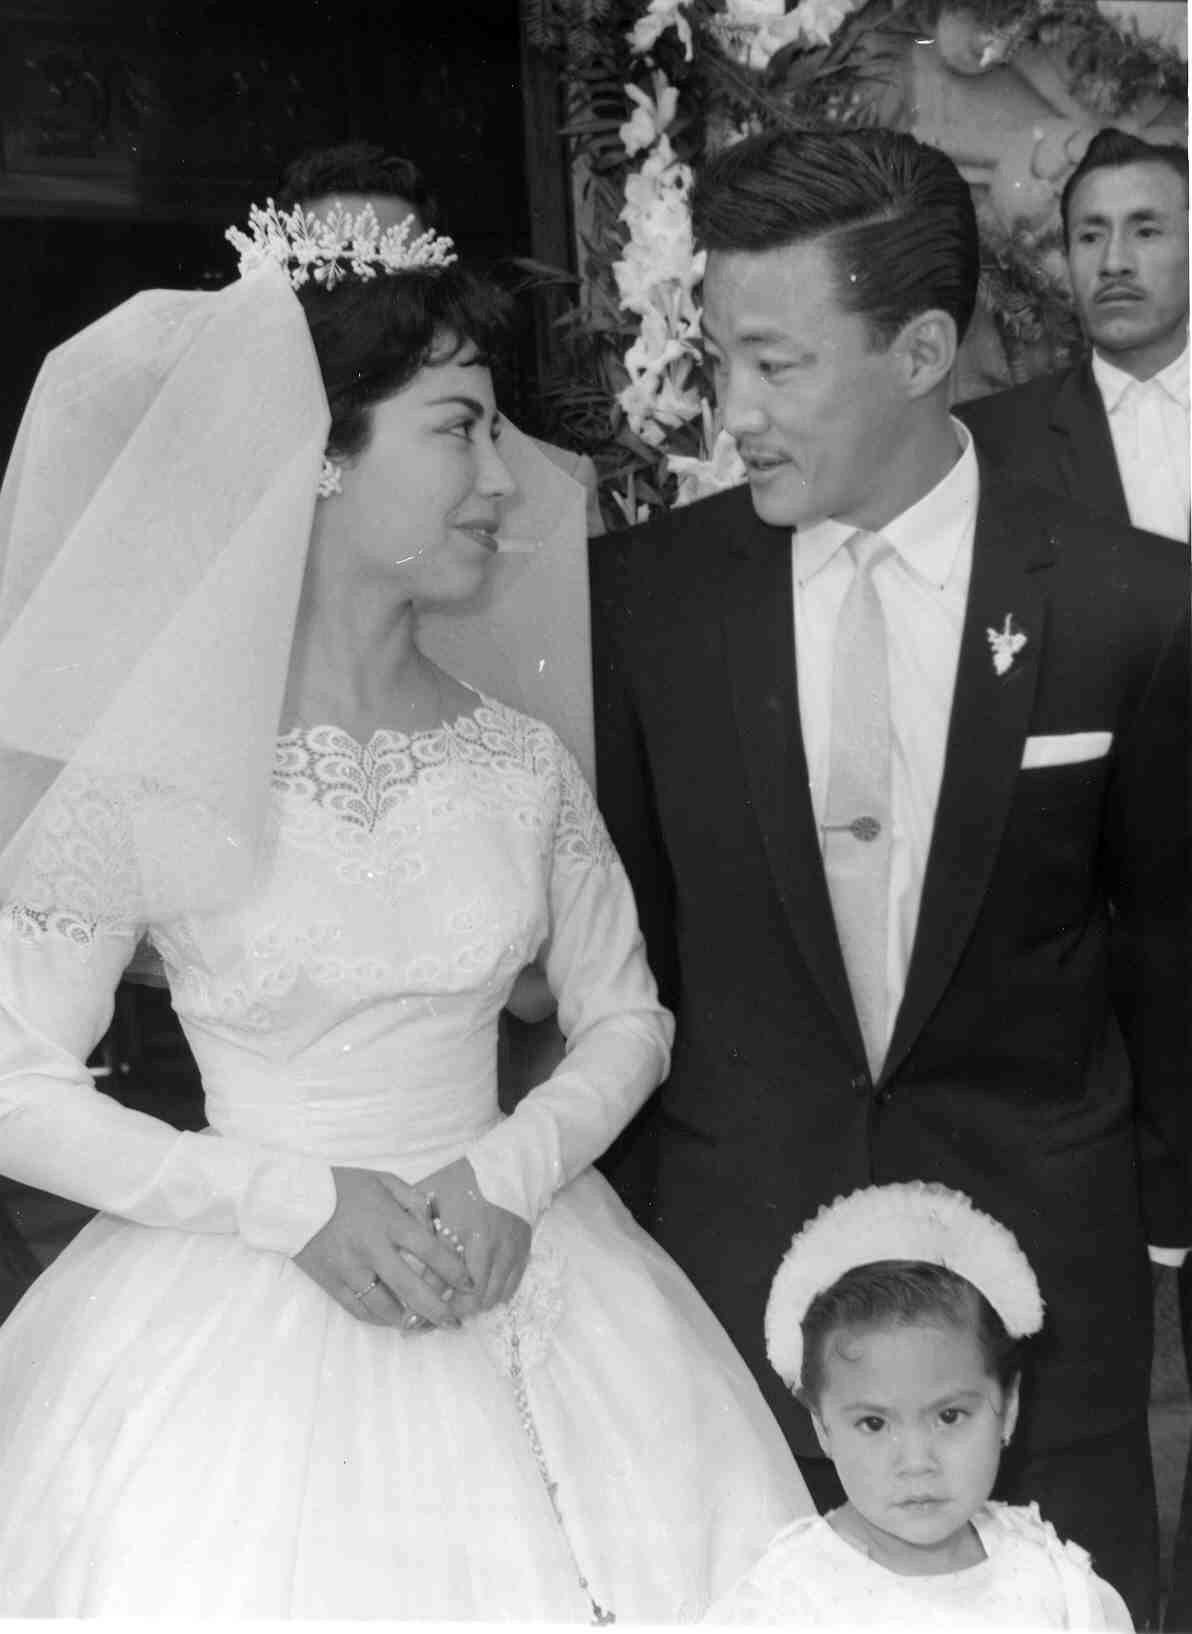 Mom and Dad on their wedding day